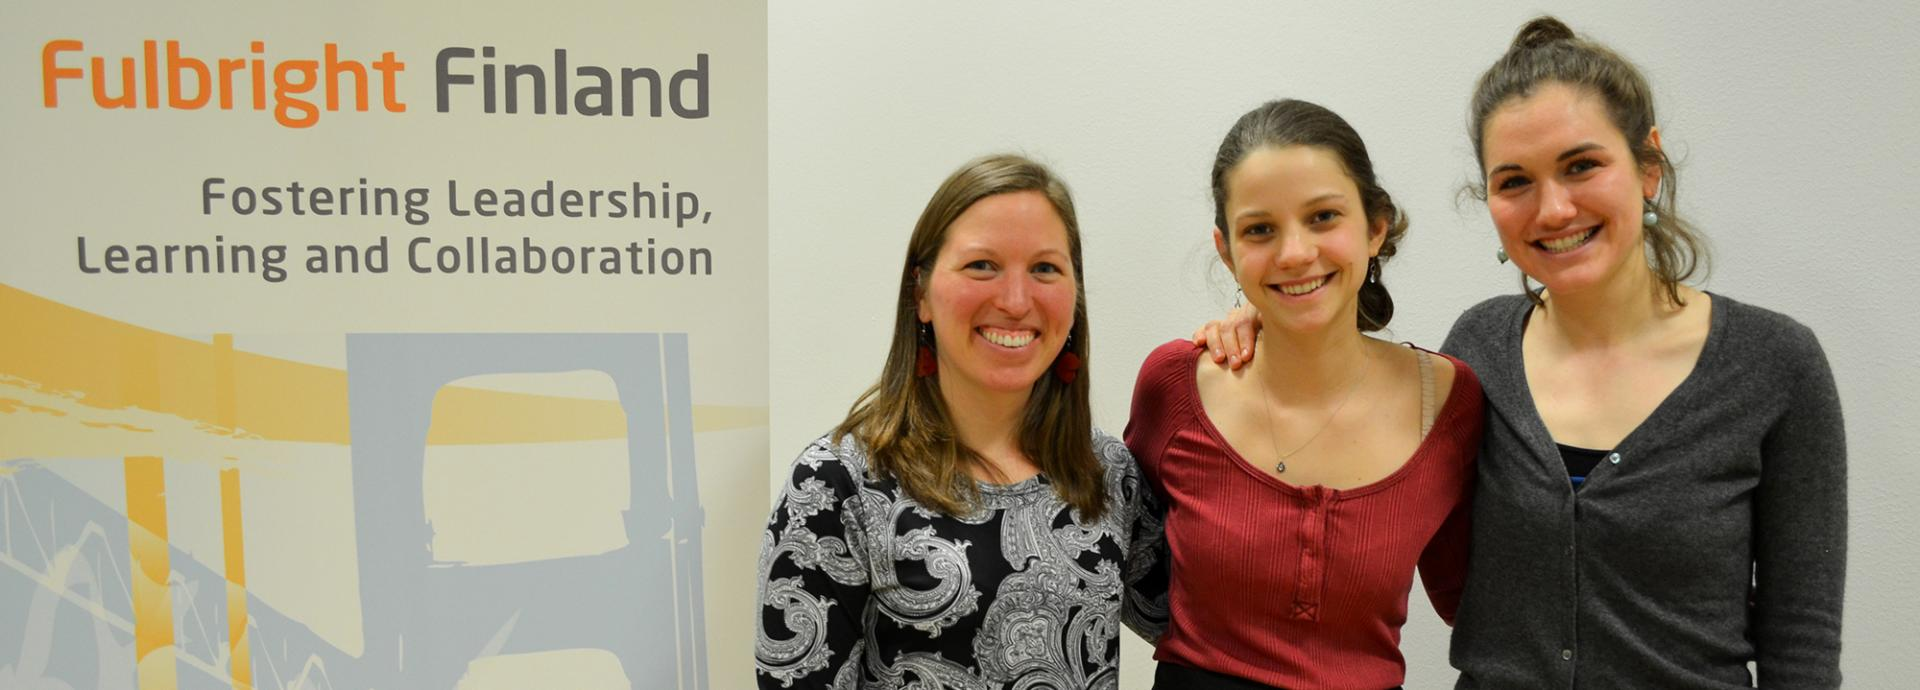 2017 Roth Endowment Award winners smiling next to Fulbright Finland roll-up